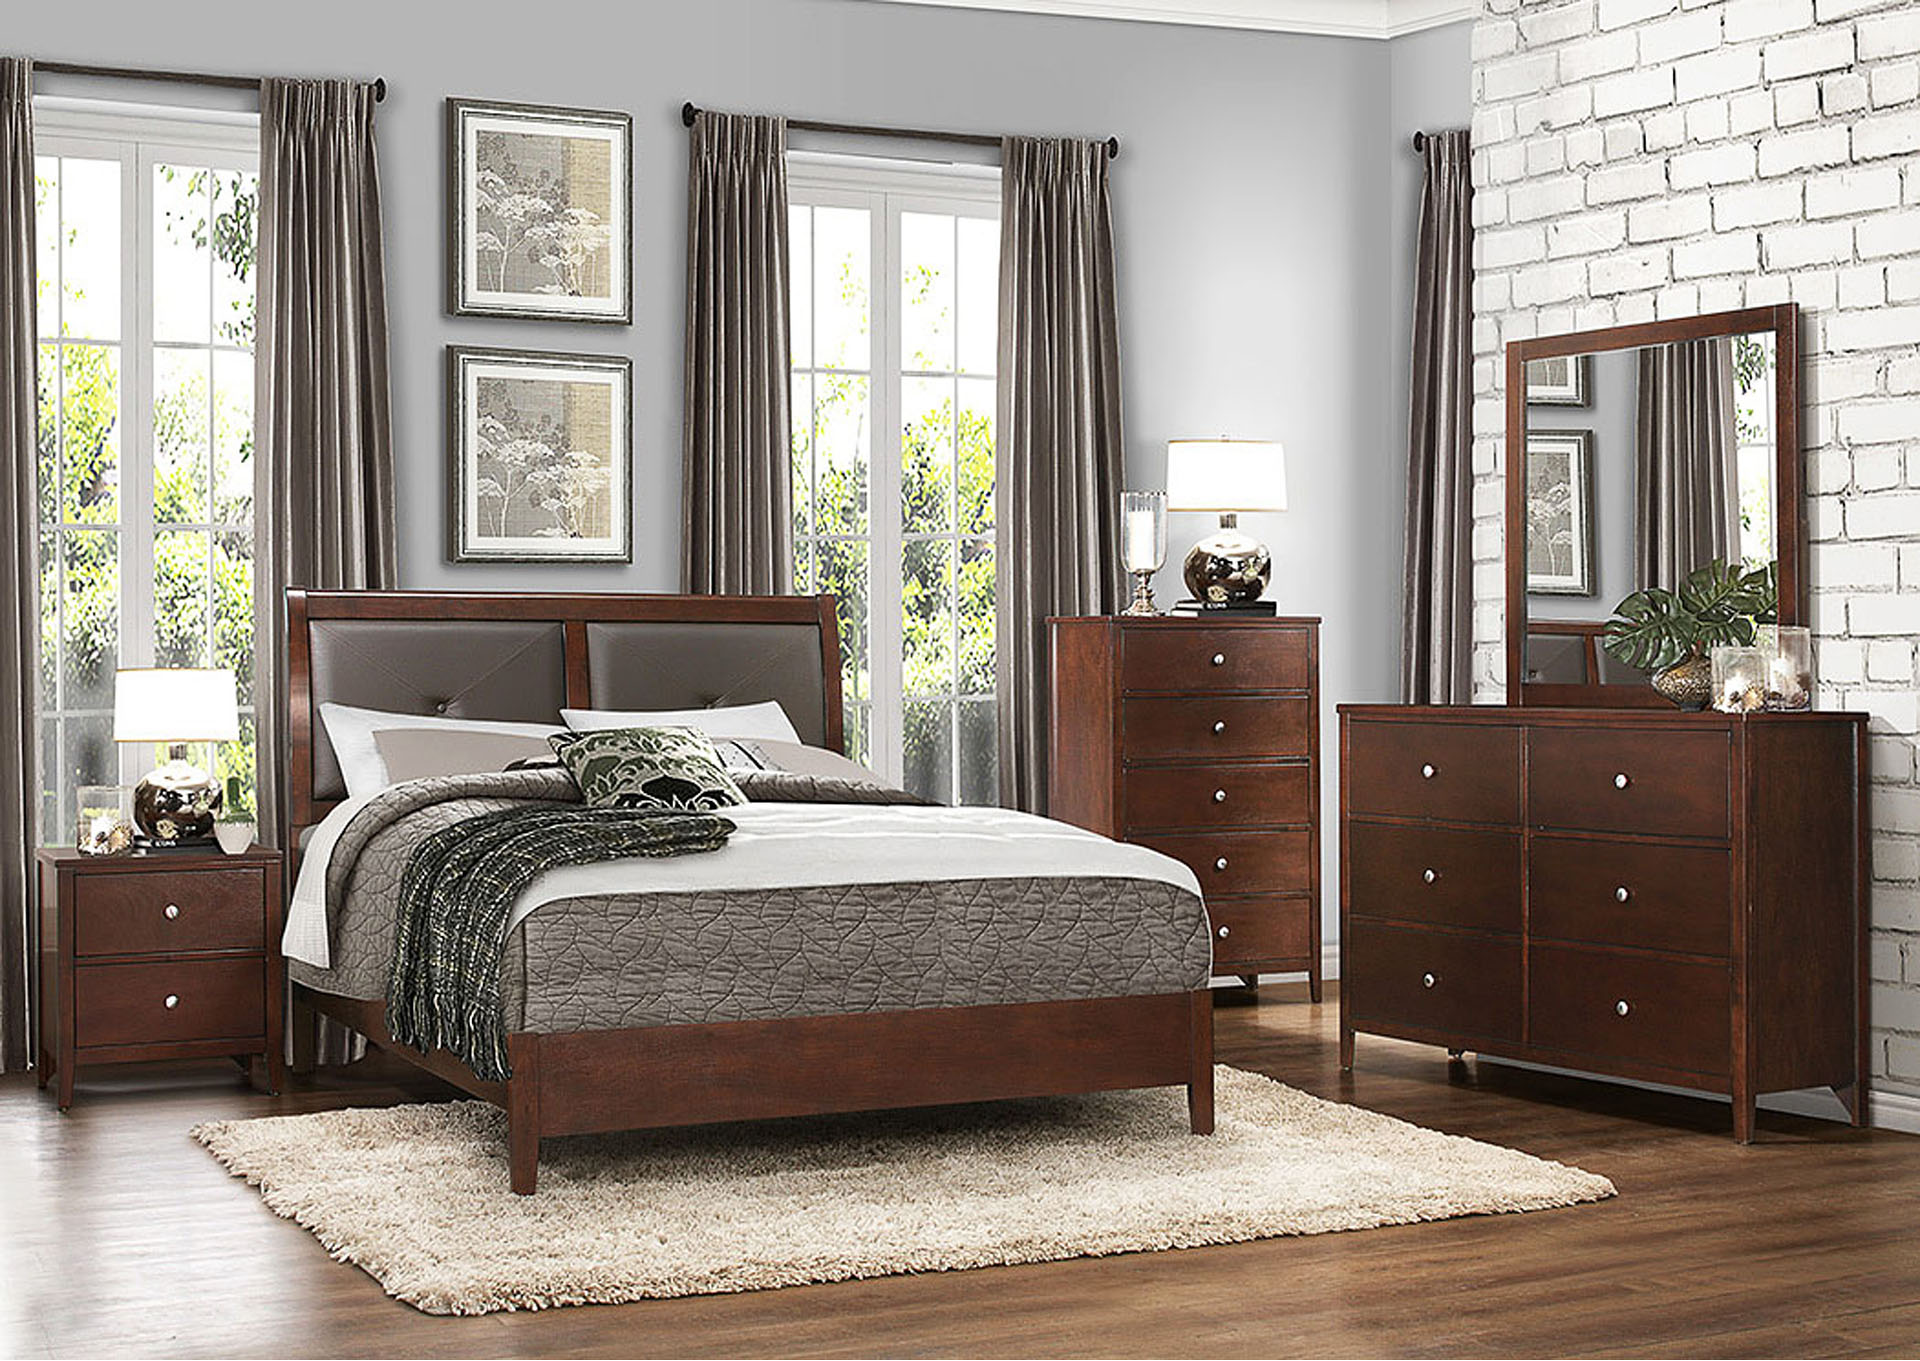 Cullen Brown Cherry California King Bed,Homelegance